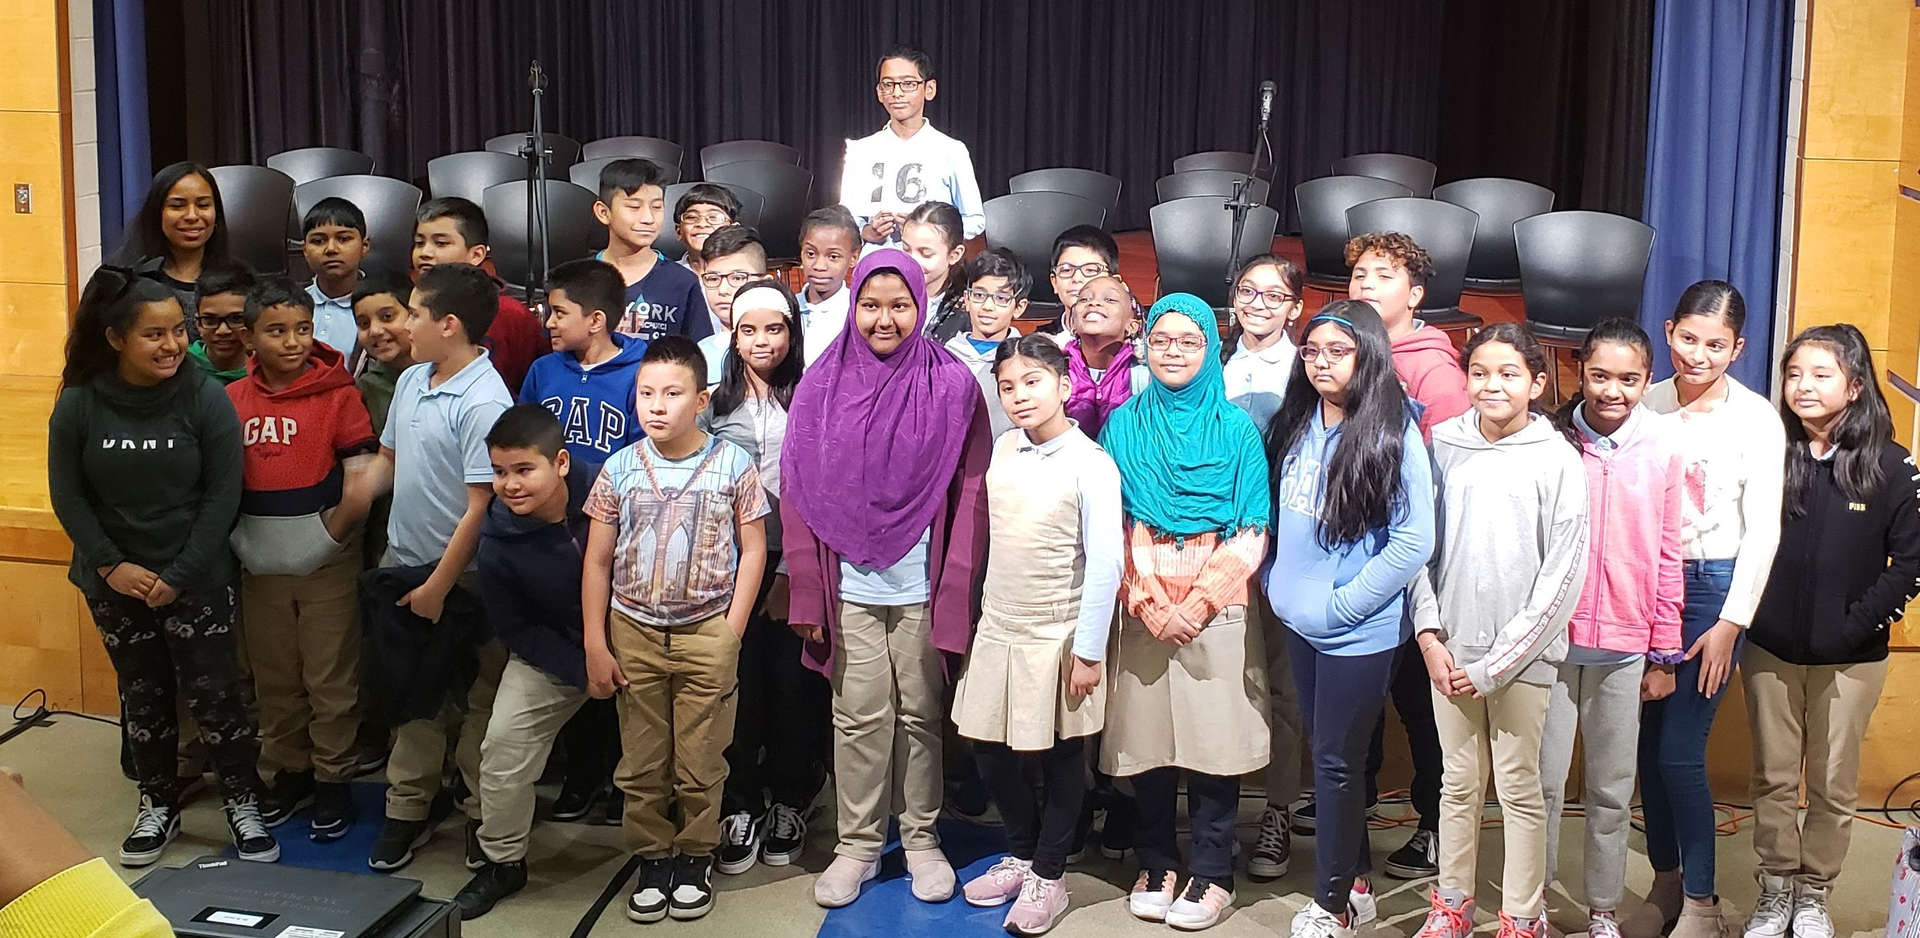 25 Students stand with one child winner of spelling bee